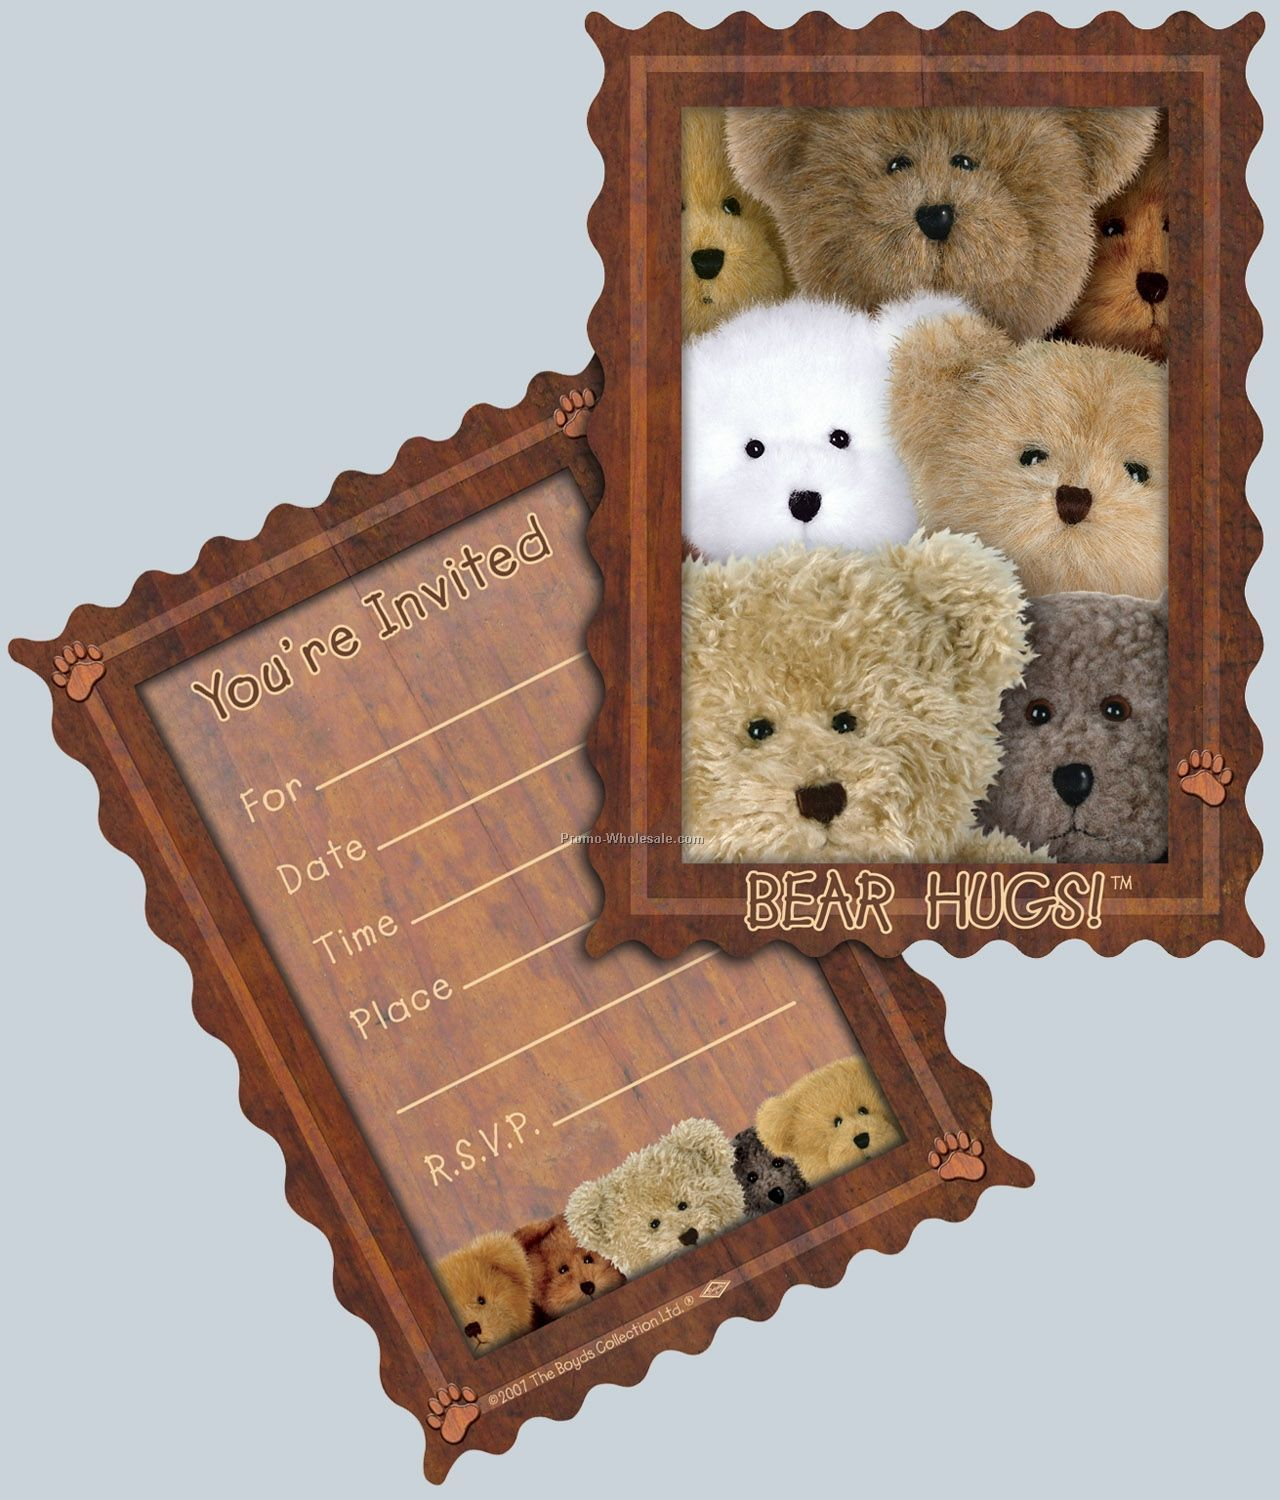 Boyds Bears Invitations - Bear Hugs